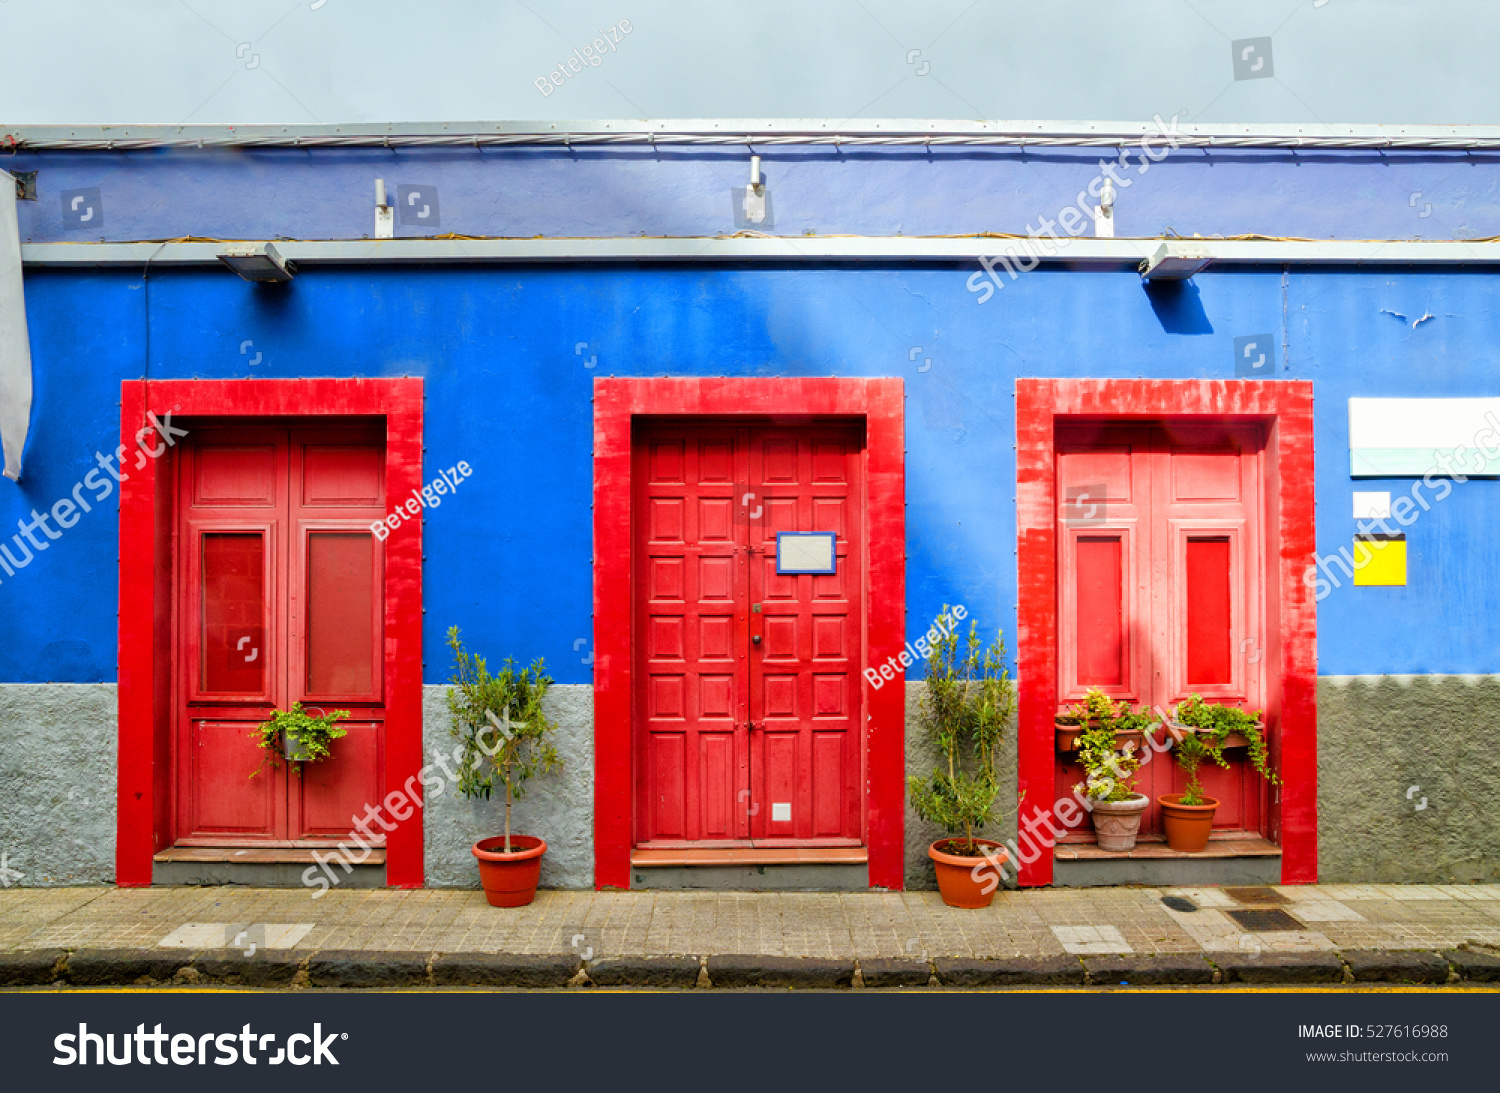 Blue House Three Red Doors Old Stock Photo Edit Now 527616988